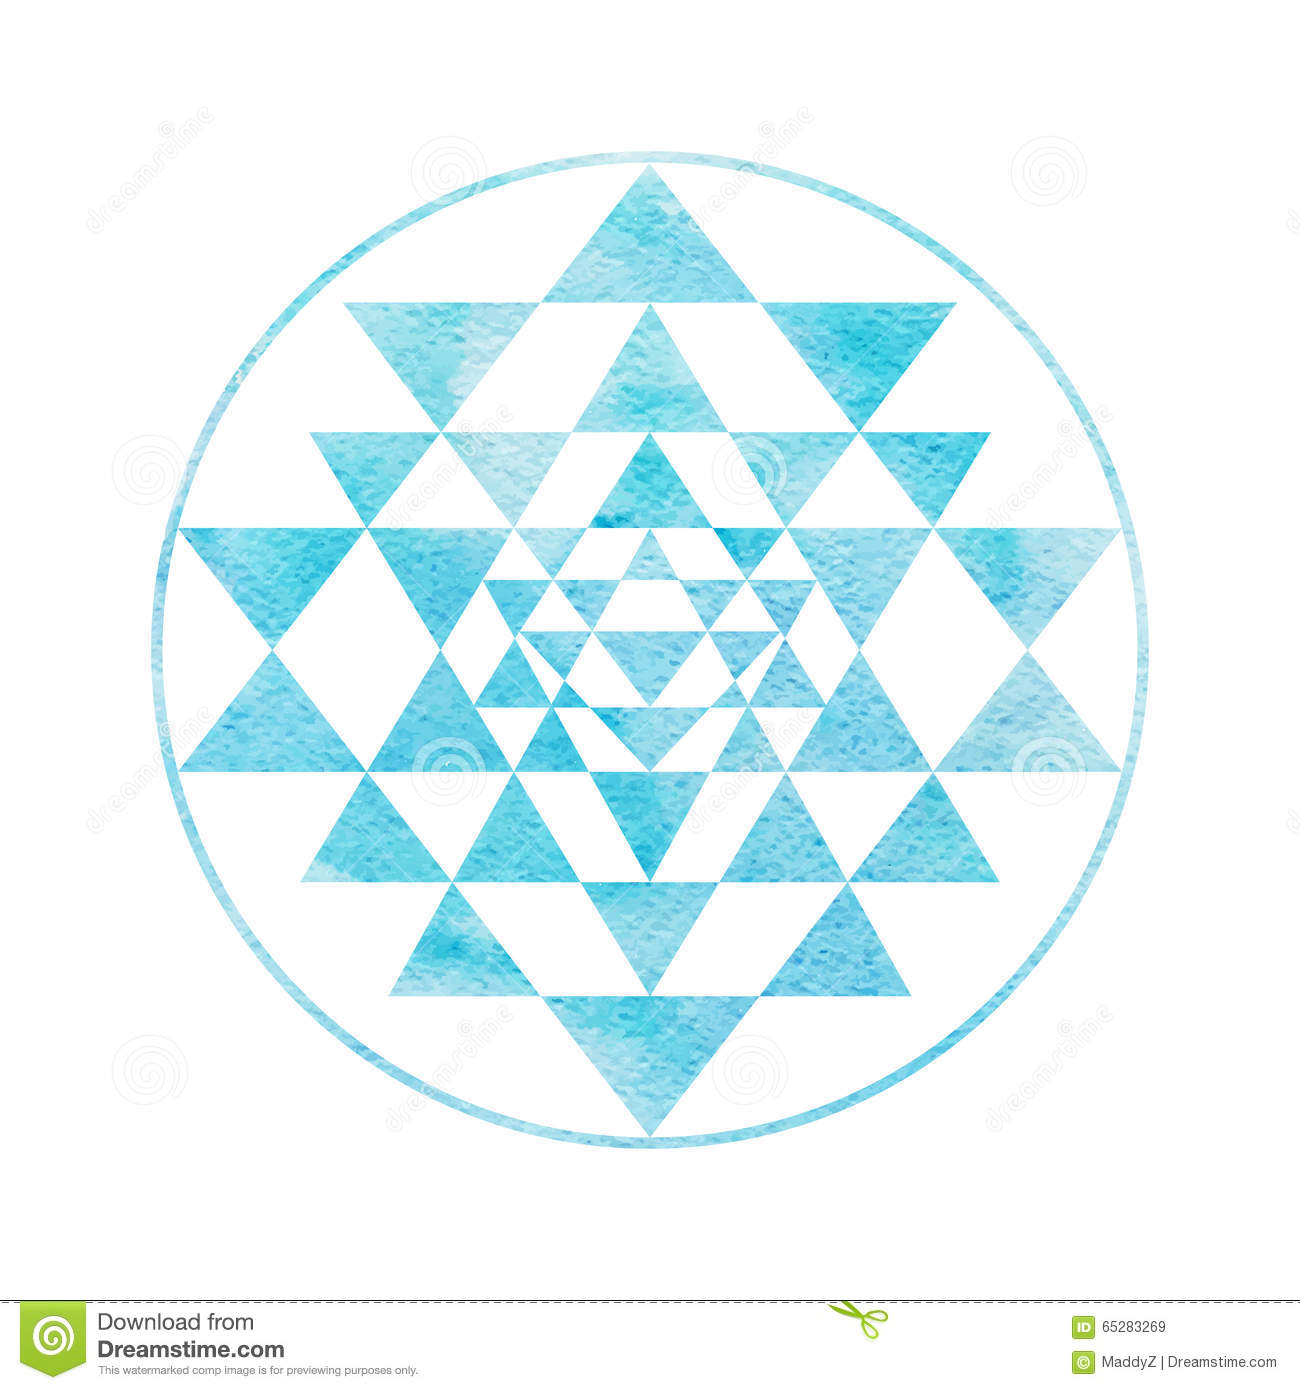 Holy symbol of hinduism image collections symbol and sign ideas holy symbol of hinduism images symbol and sign ideas symbol of hinduism holy symbol of hinduism biocorpaavc